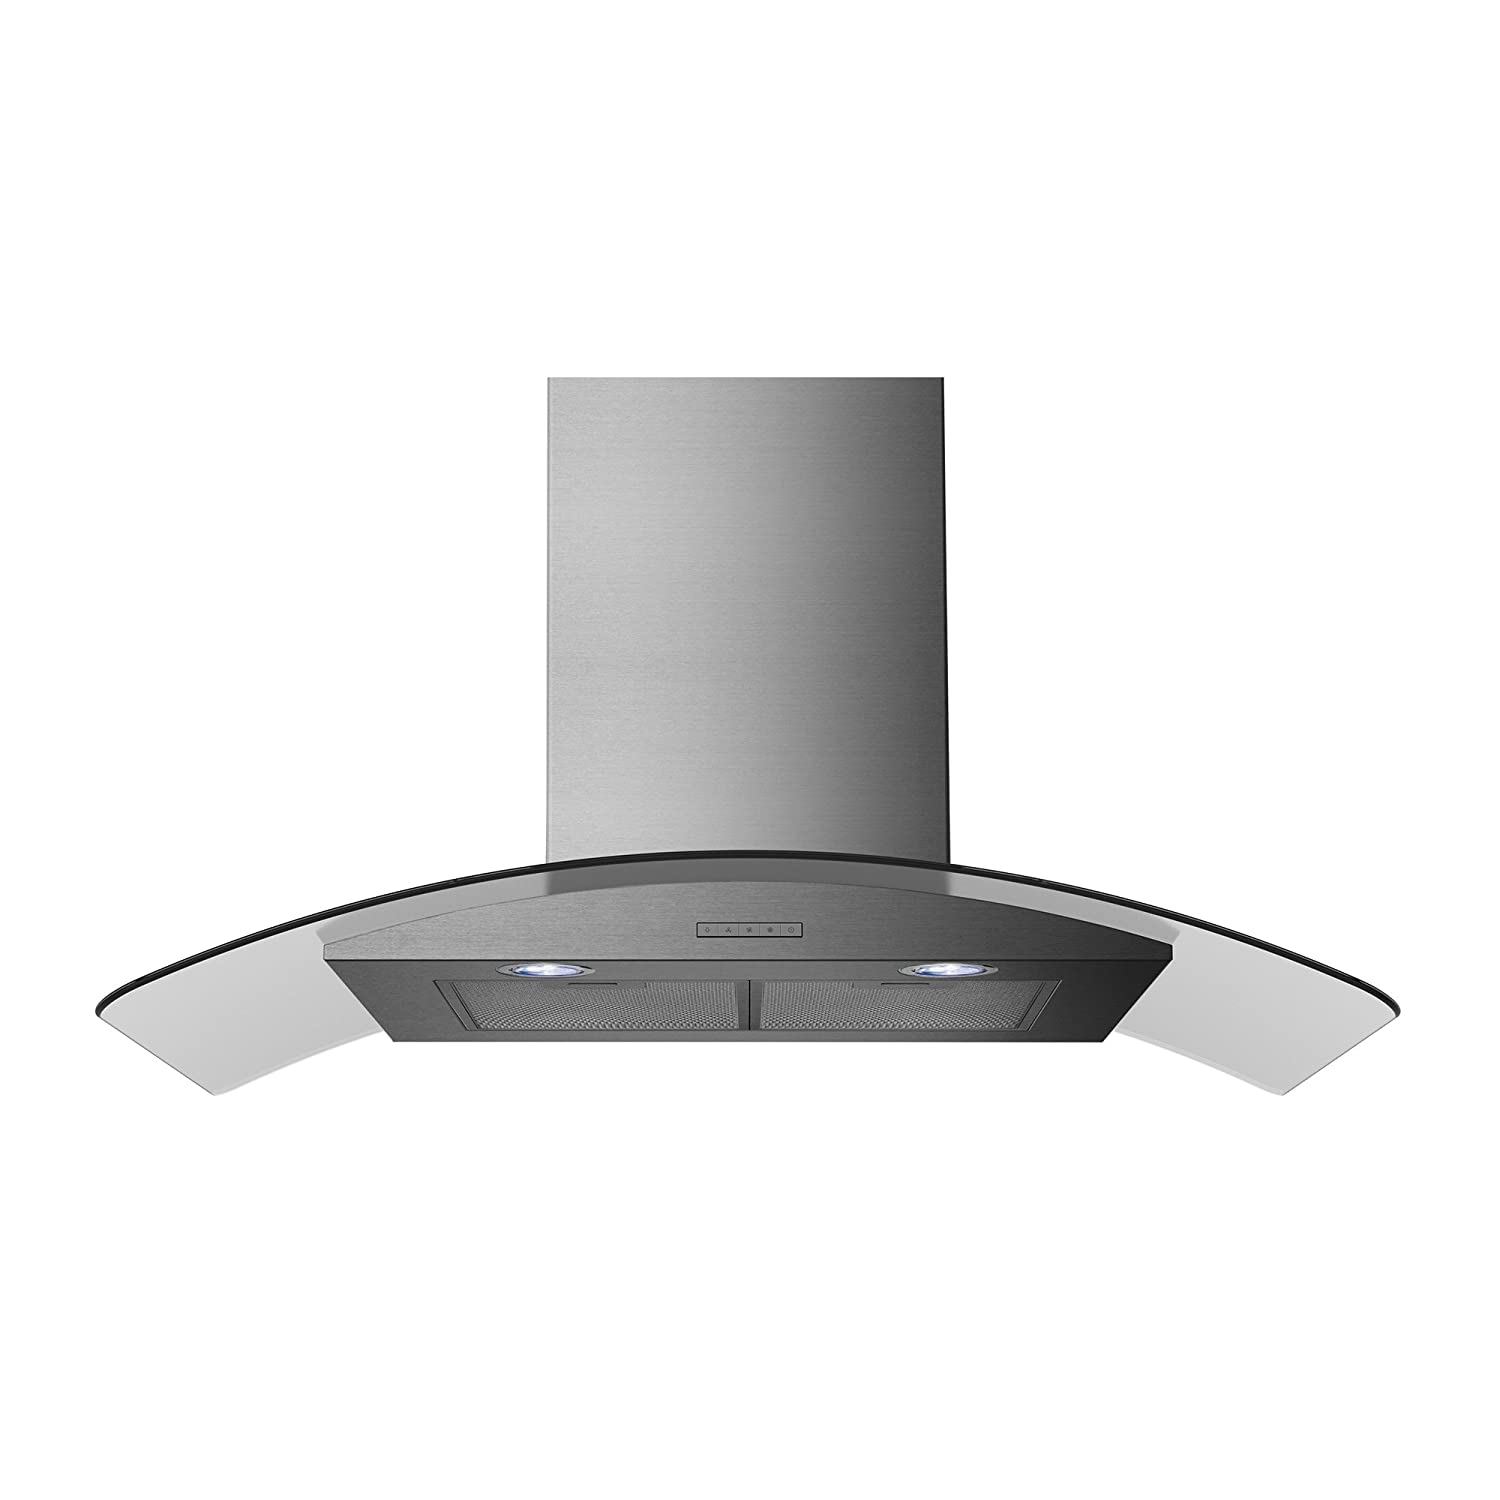 Statesman CGH90GS Curved Glass Chimney Cooker Hood, 90 cm, Stainless Steel [Energy Class D]